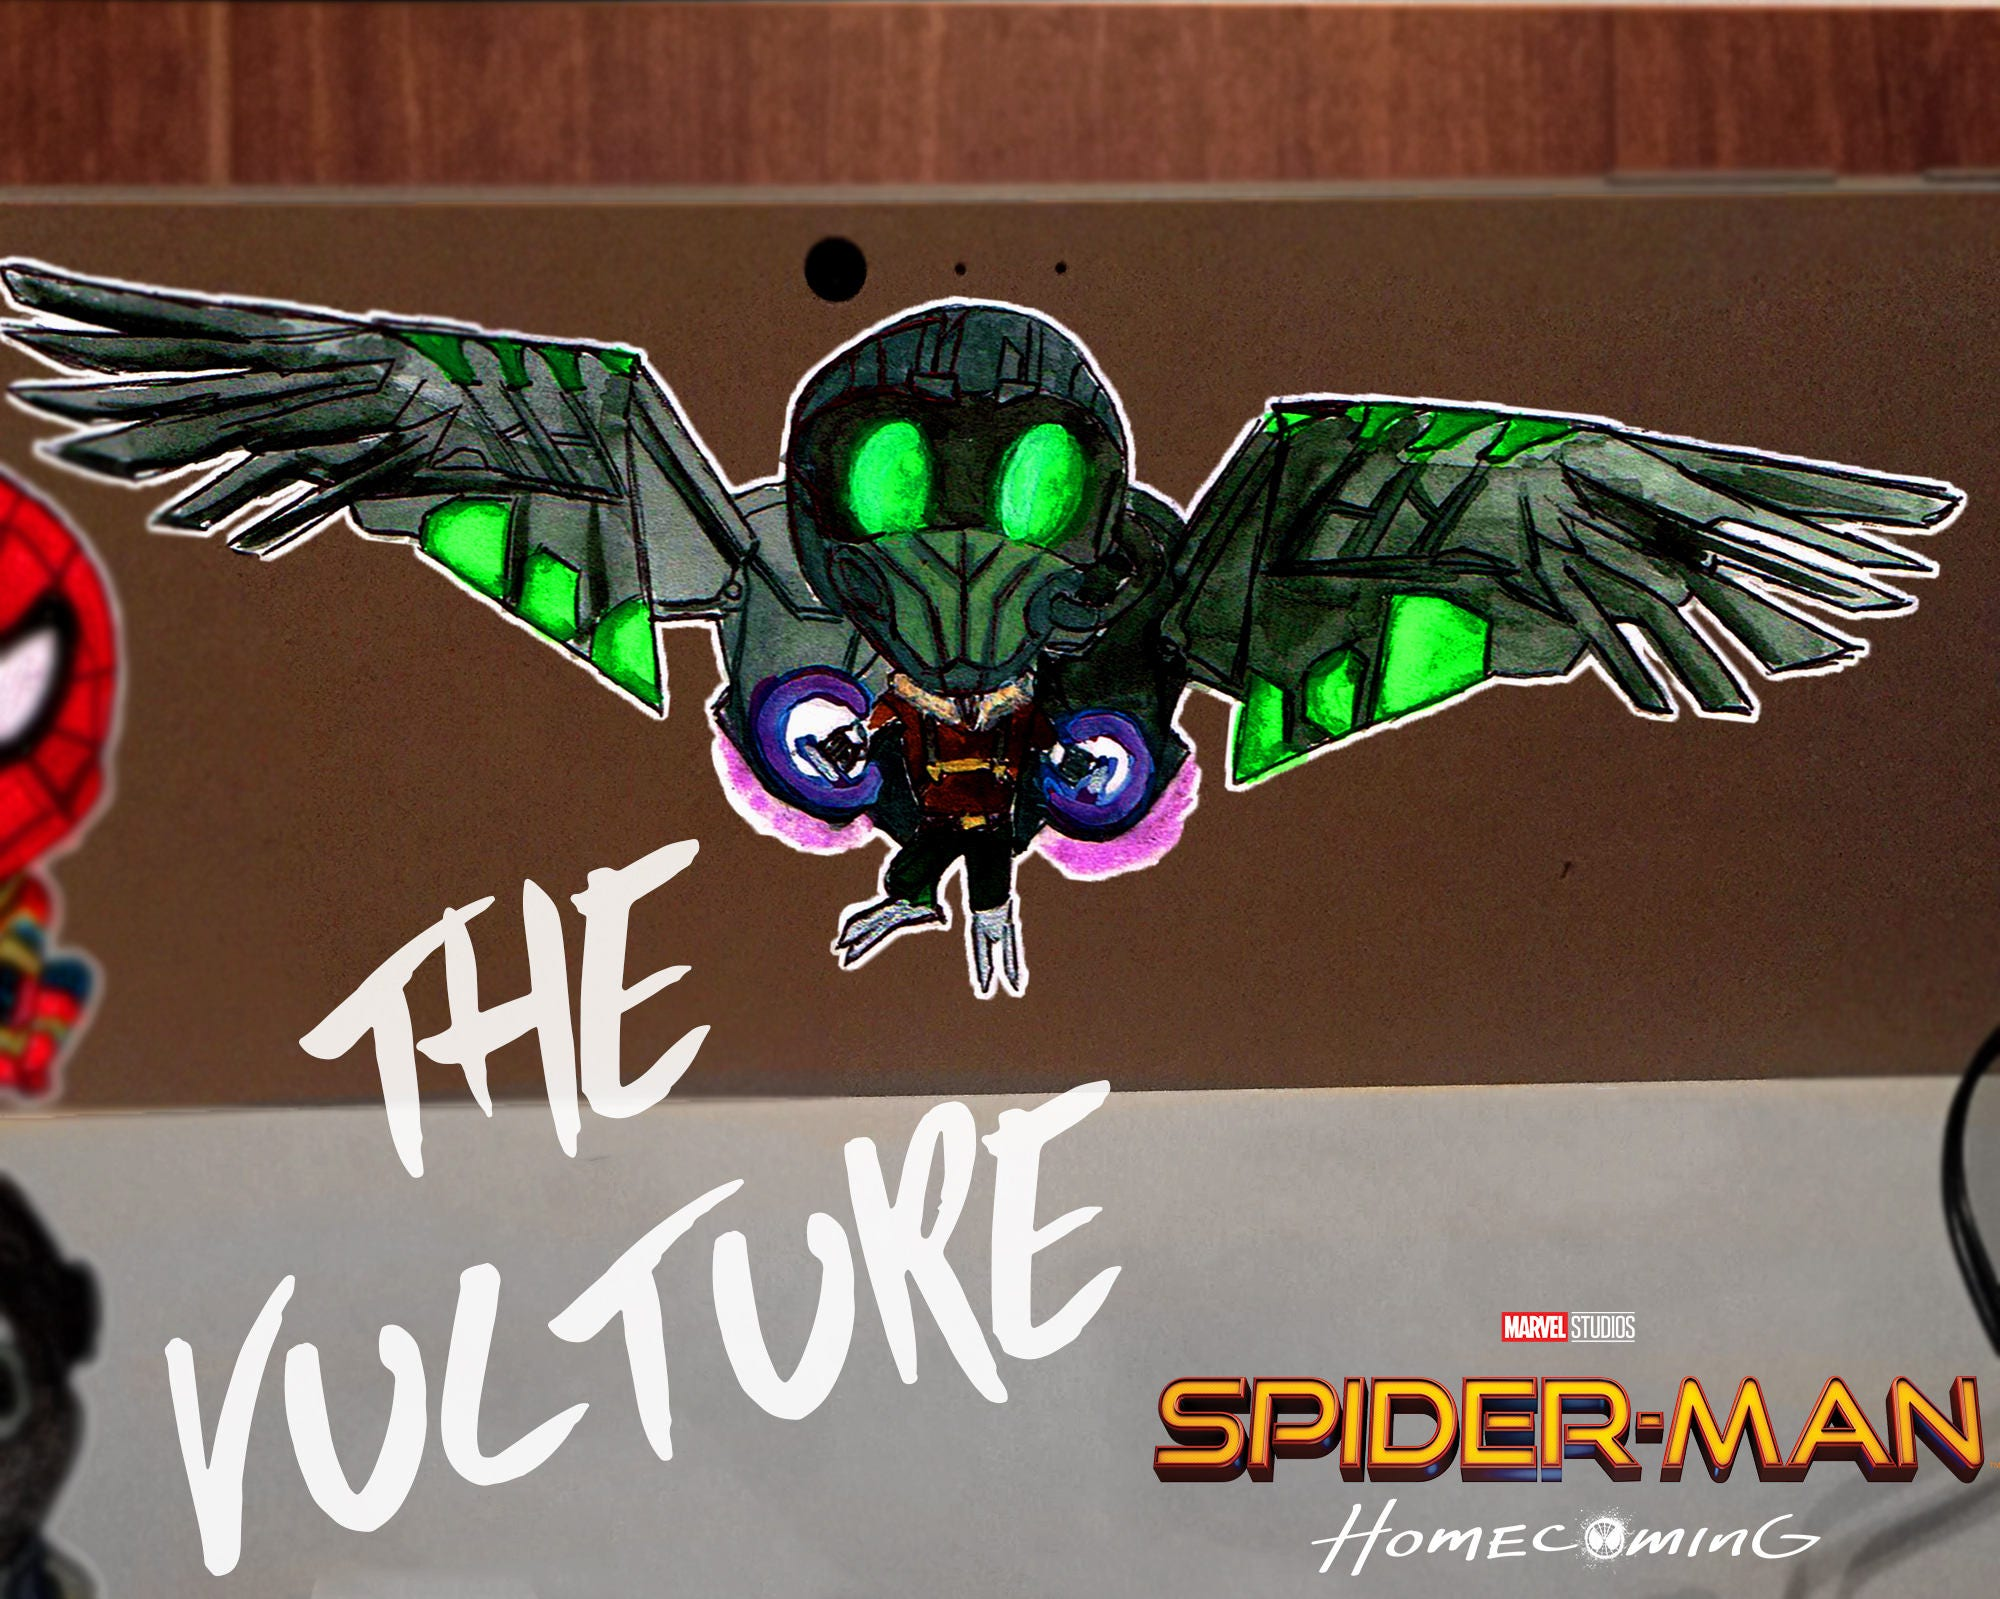 THE VULTURE Chibi Spider-Man Homecoming DecalFree Shipping | Etsy